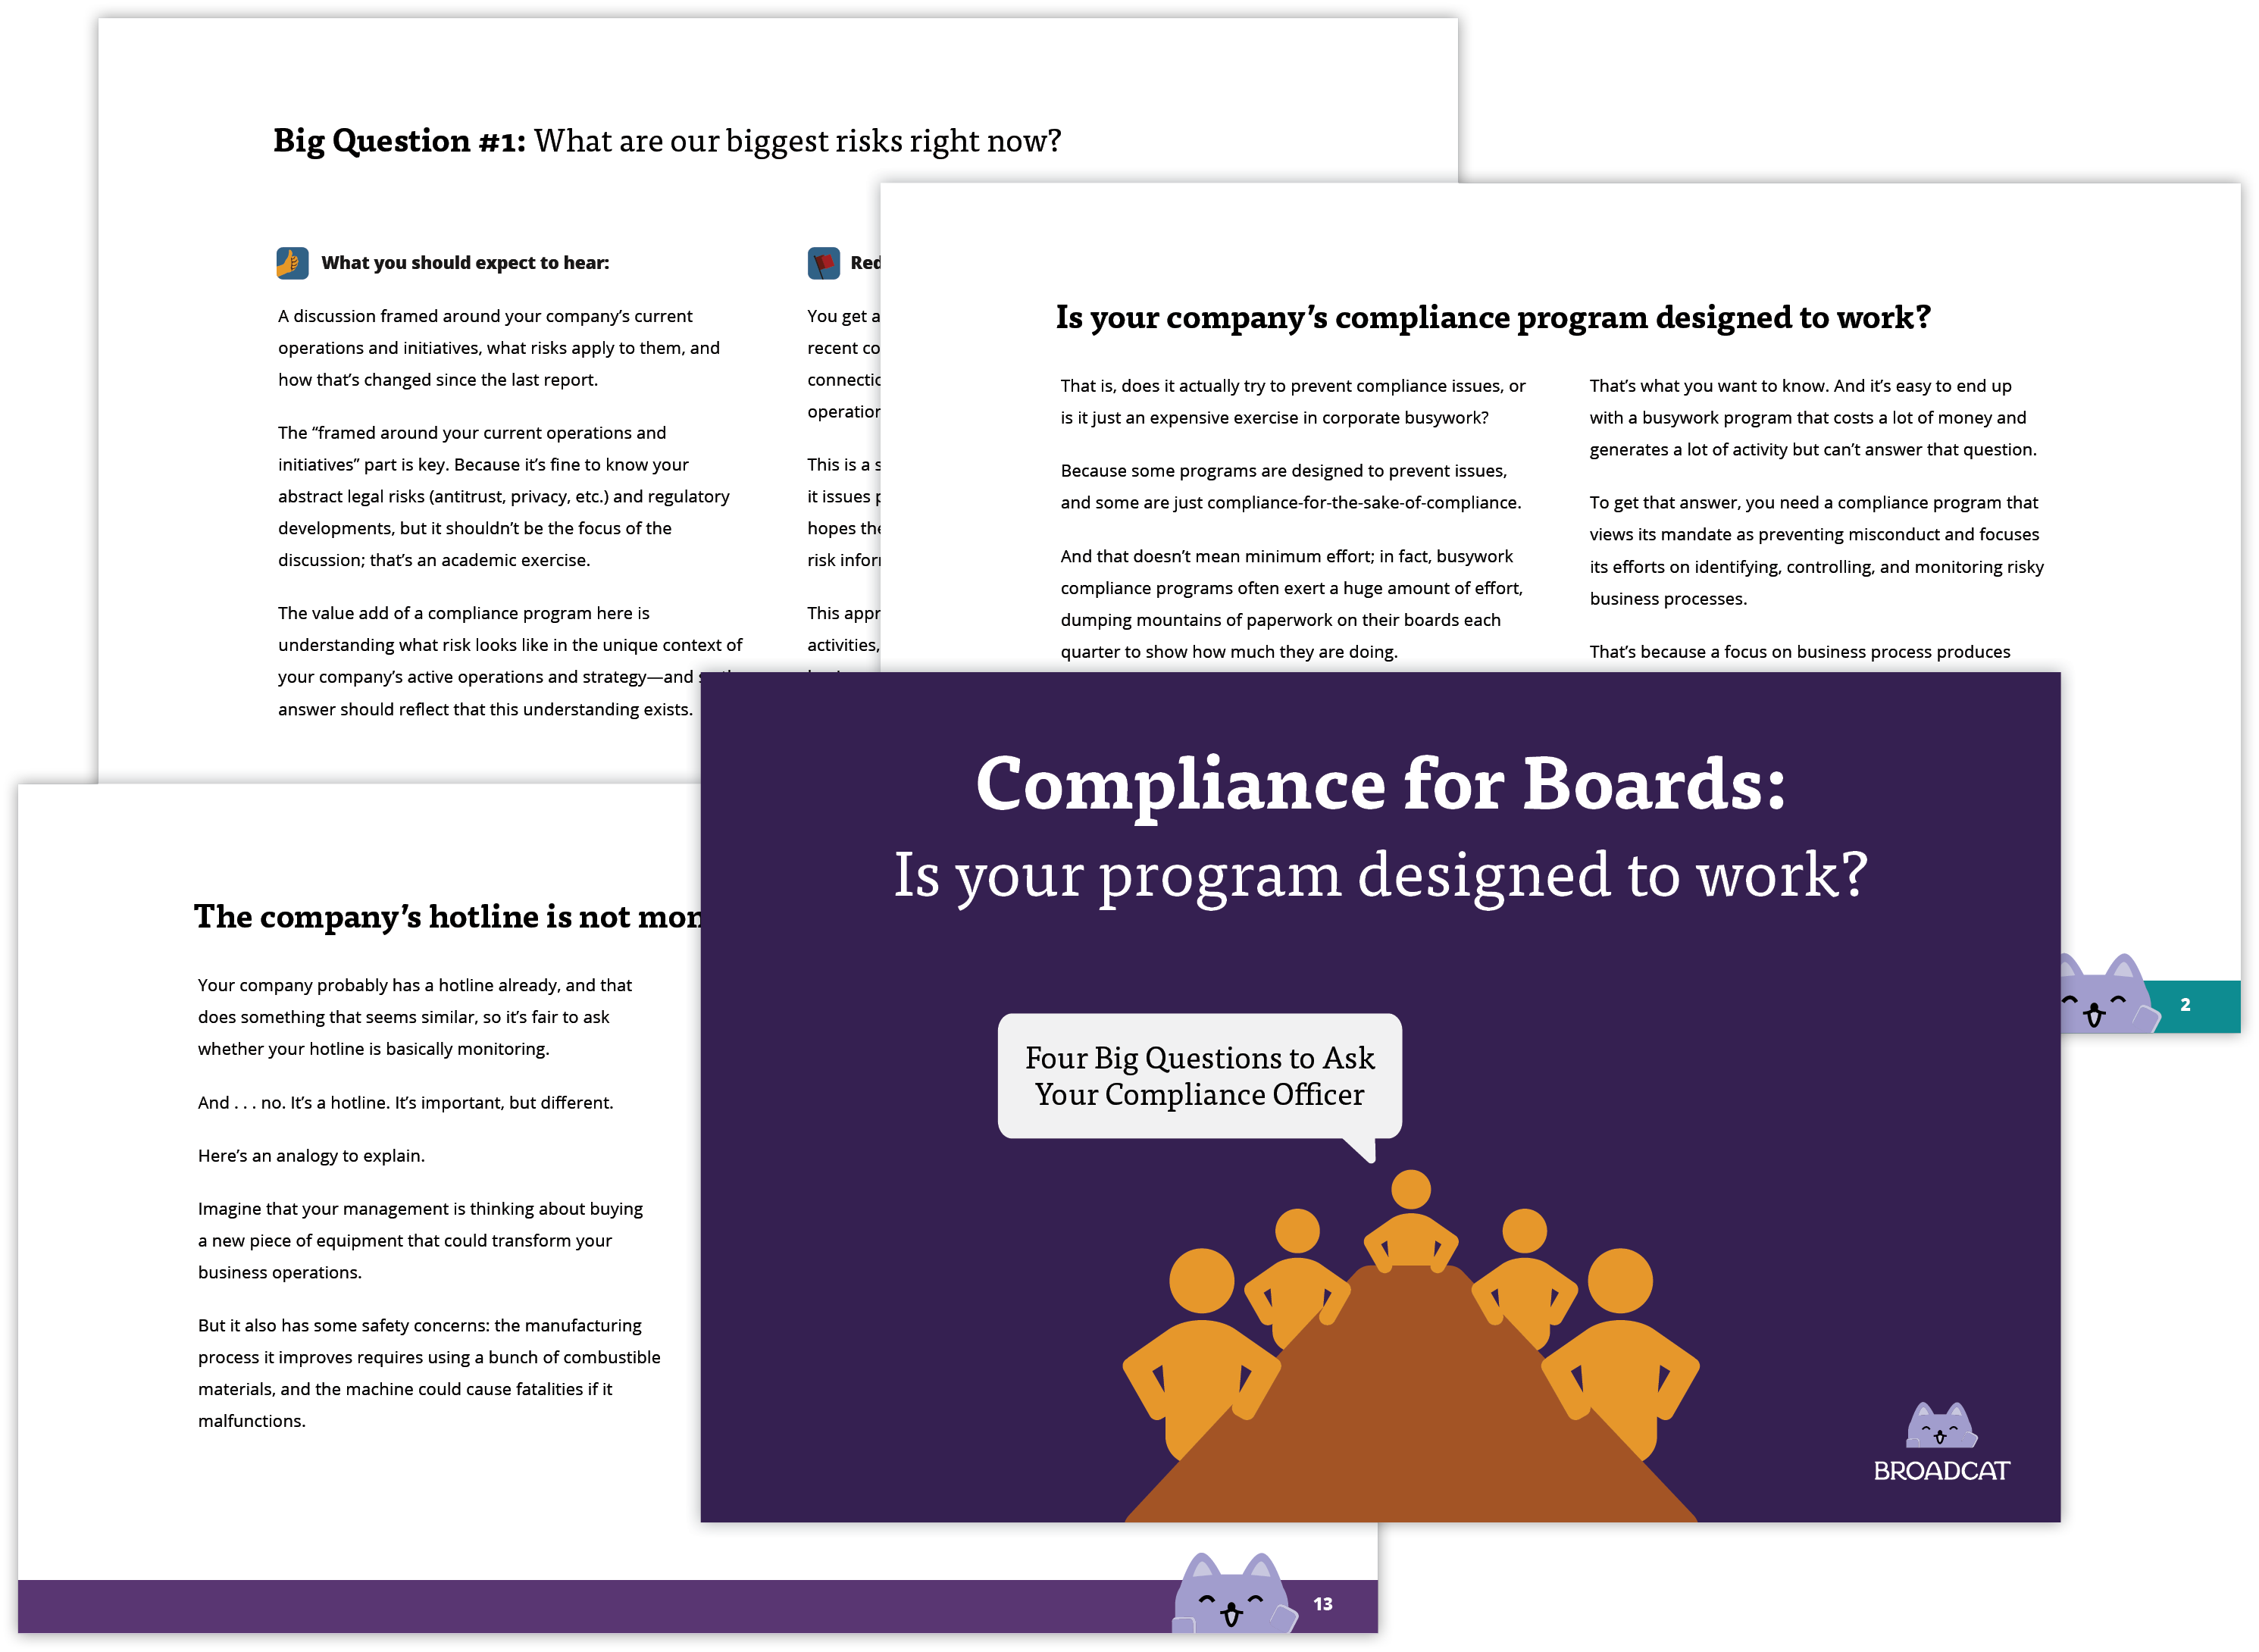 Compliance-for-Boards-preview.png